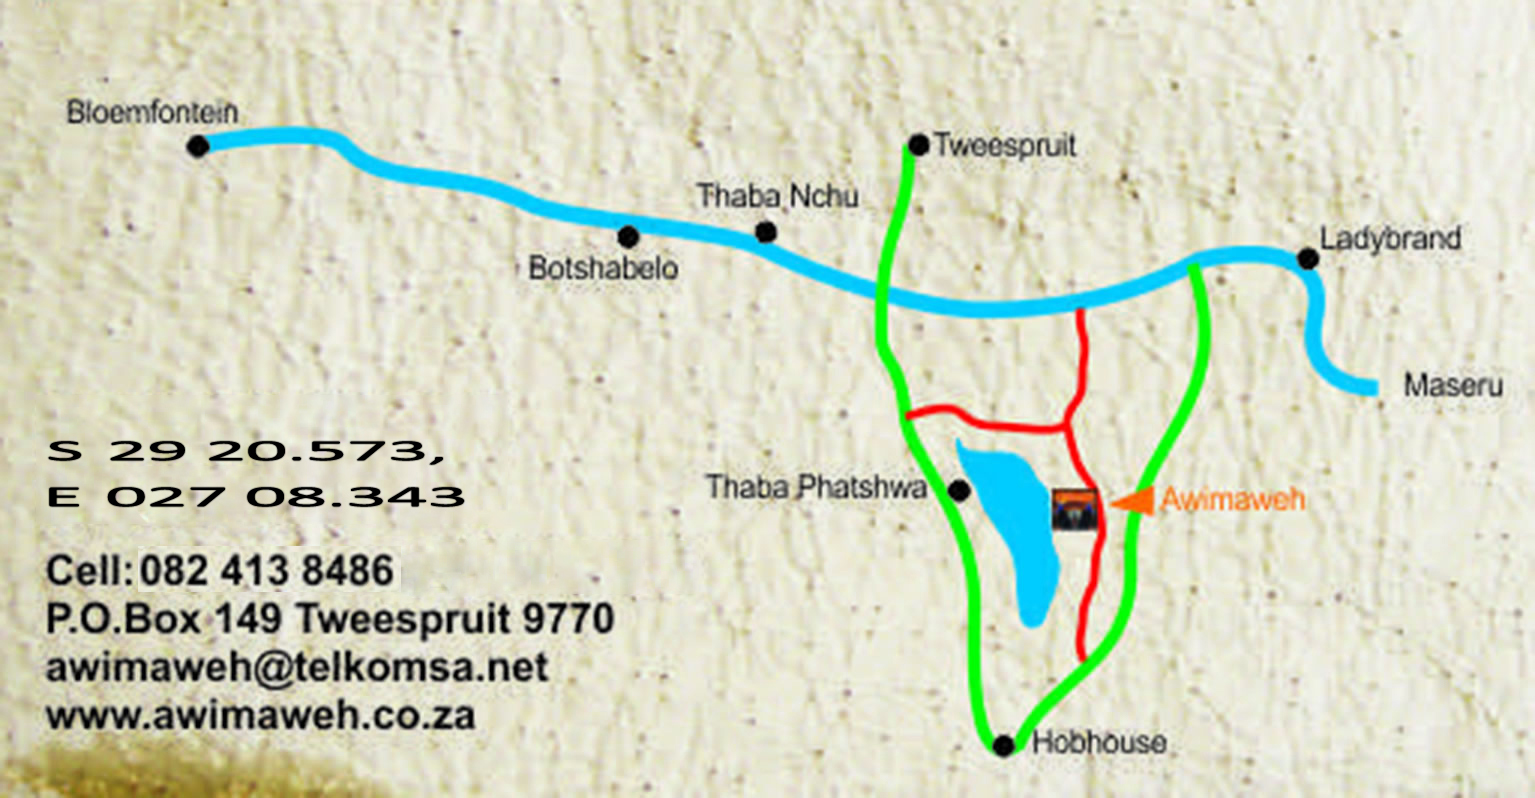 Awimaweh Map to awimaweh location